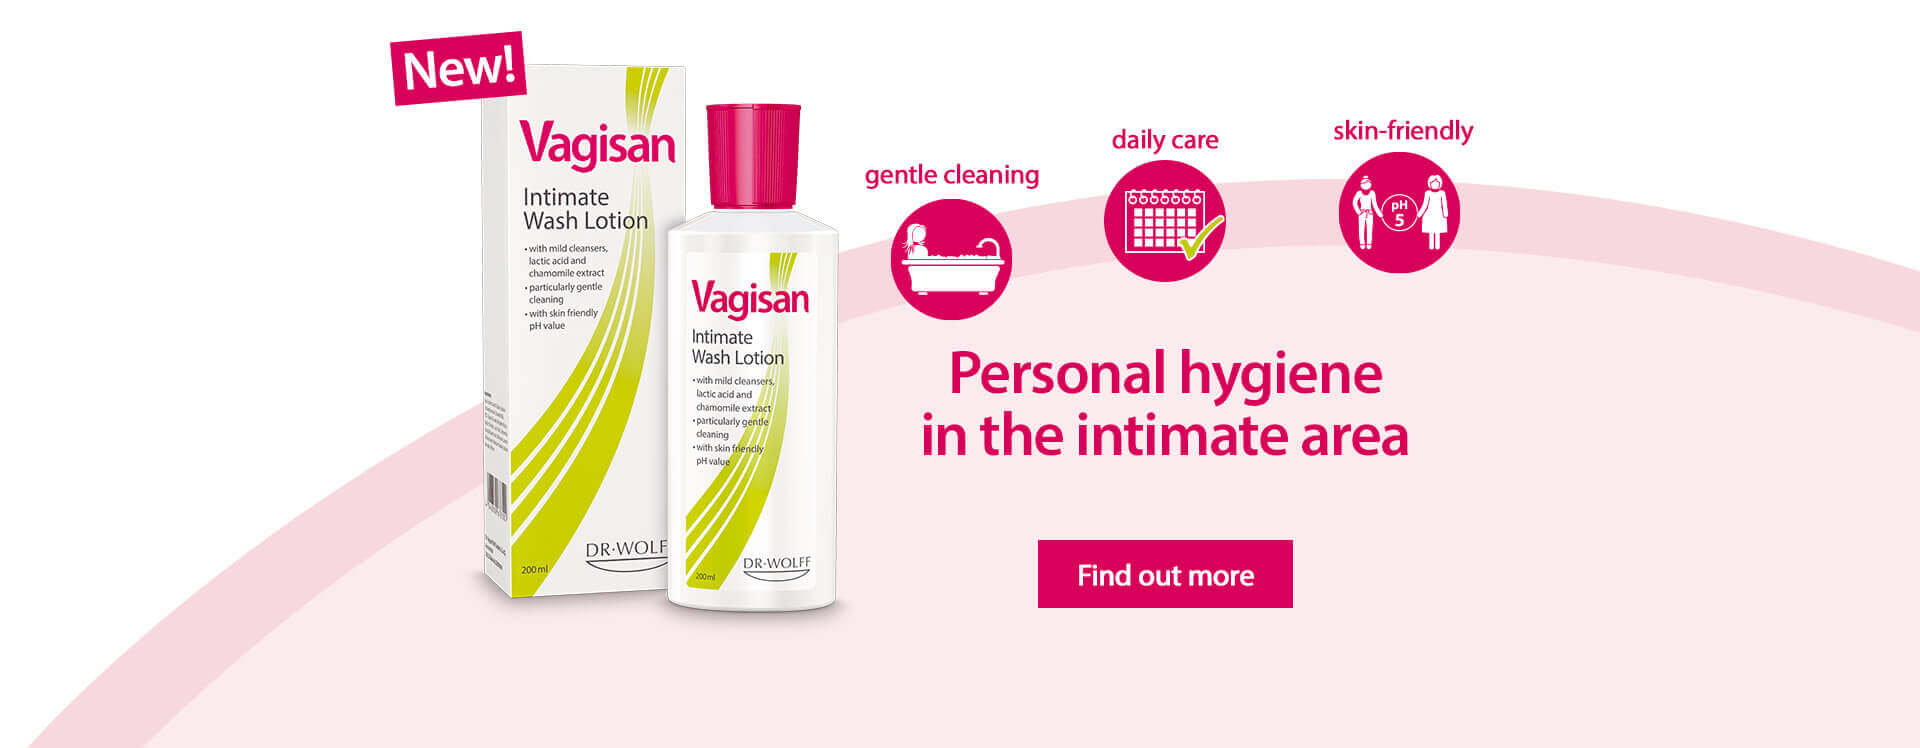 Personal hygiene in the intimate area